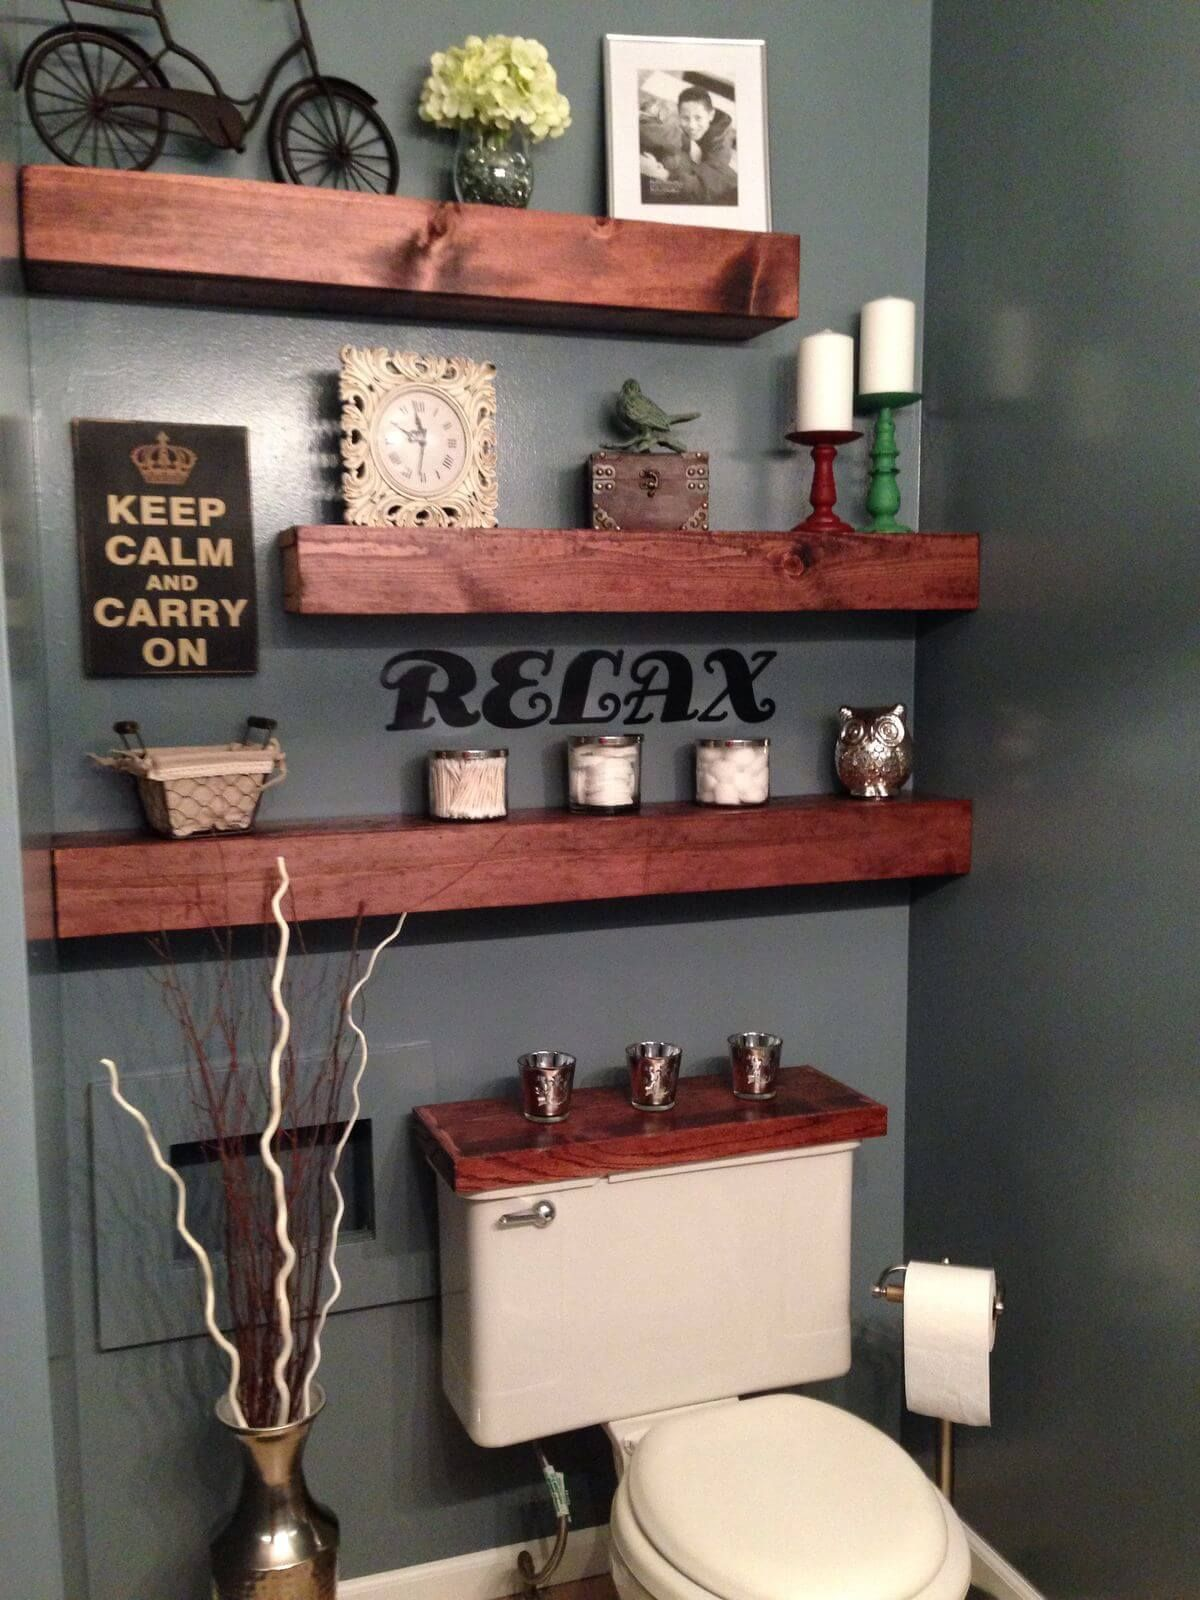 items rack shelf bathroom clothing decor the pipe room laundry industrial decorations in